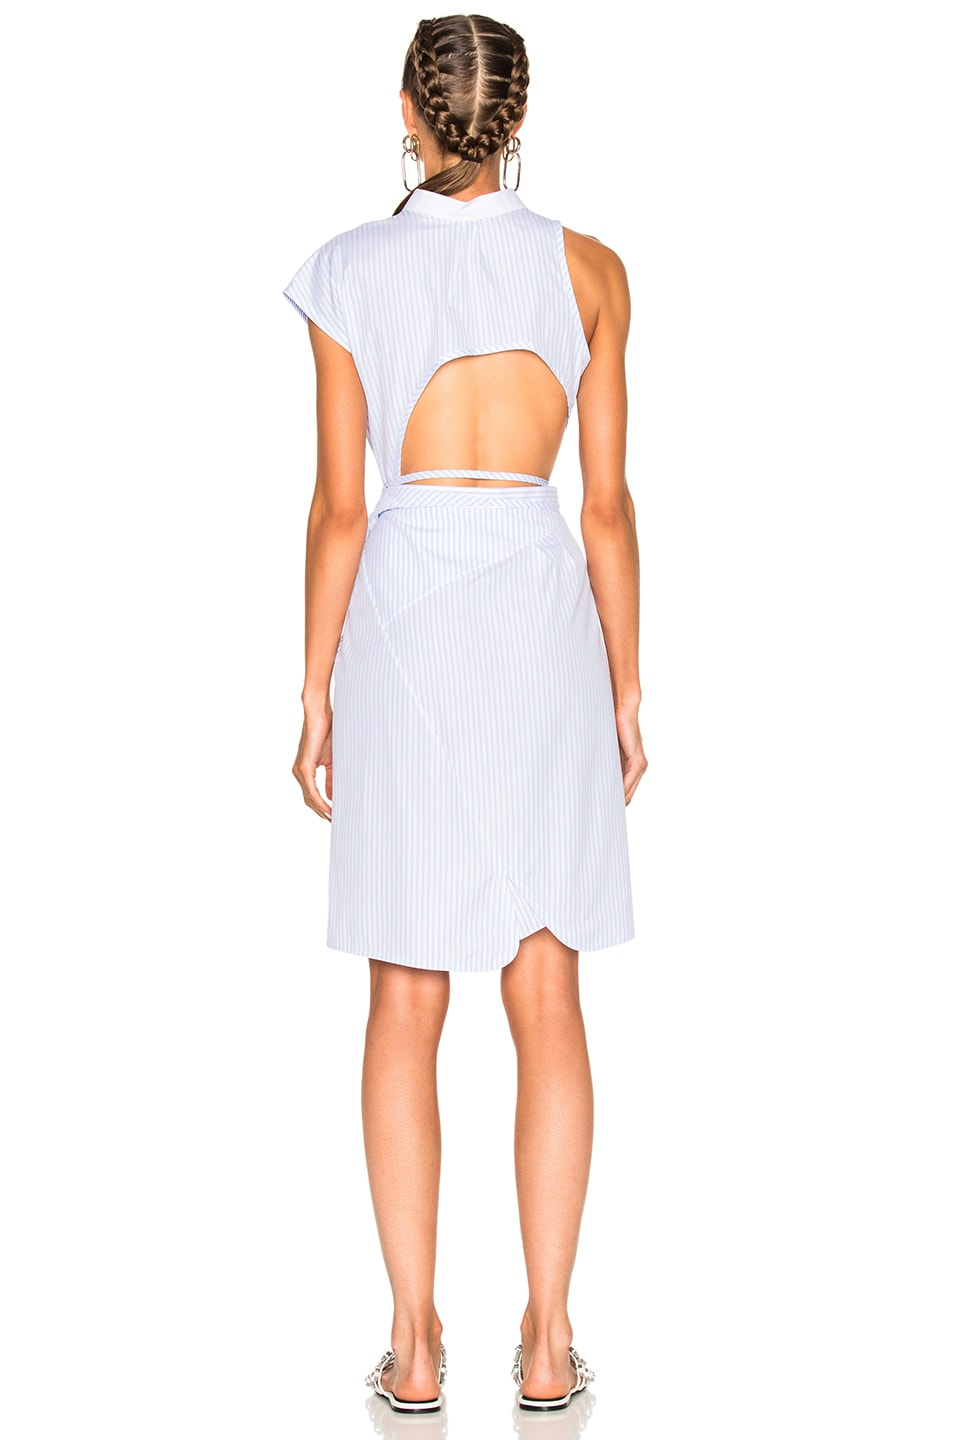 58213b1b00 Image 4 of Alexander Wang Asymmetric Deconstructed Shirt Wrap Dress in  Oxford Multi